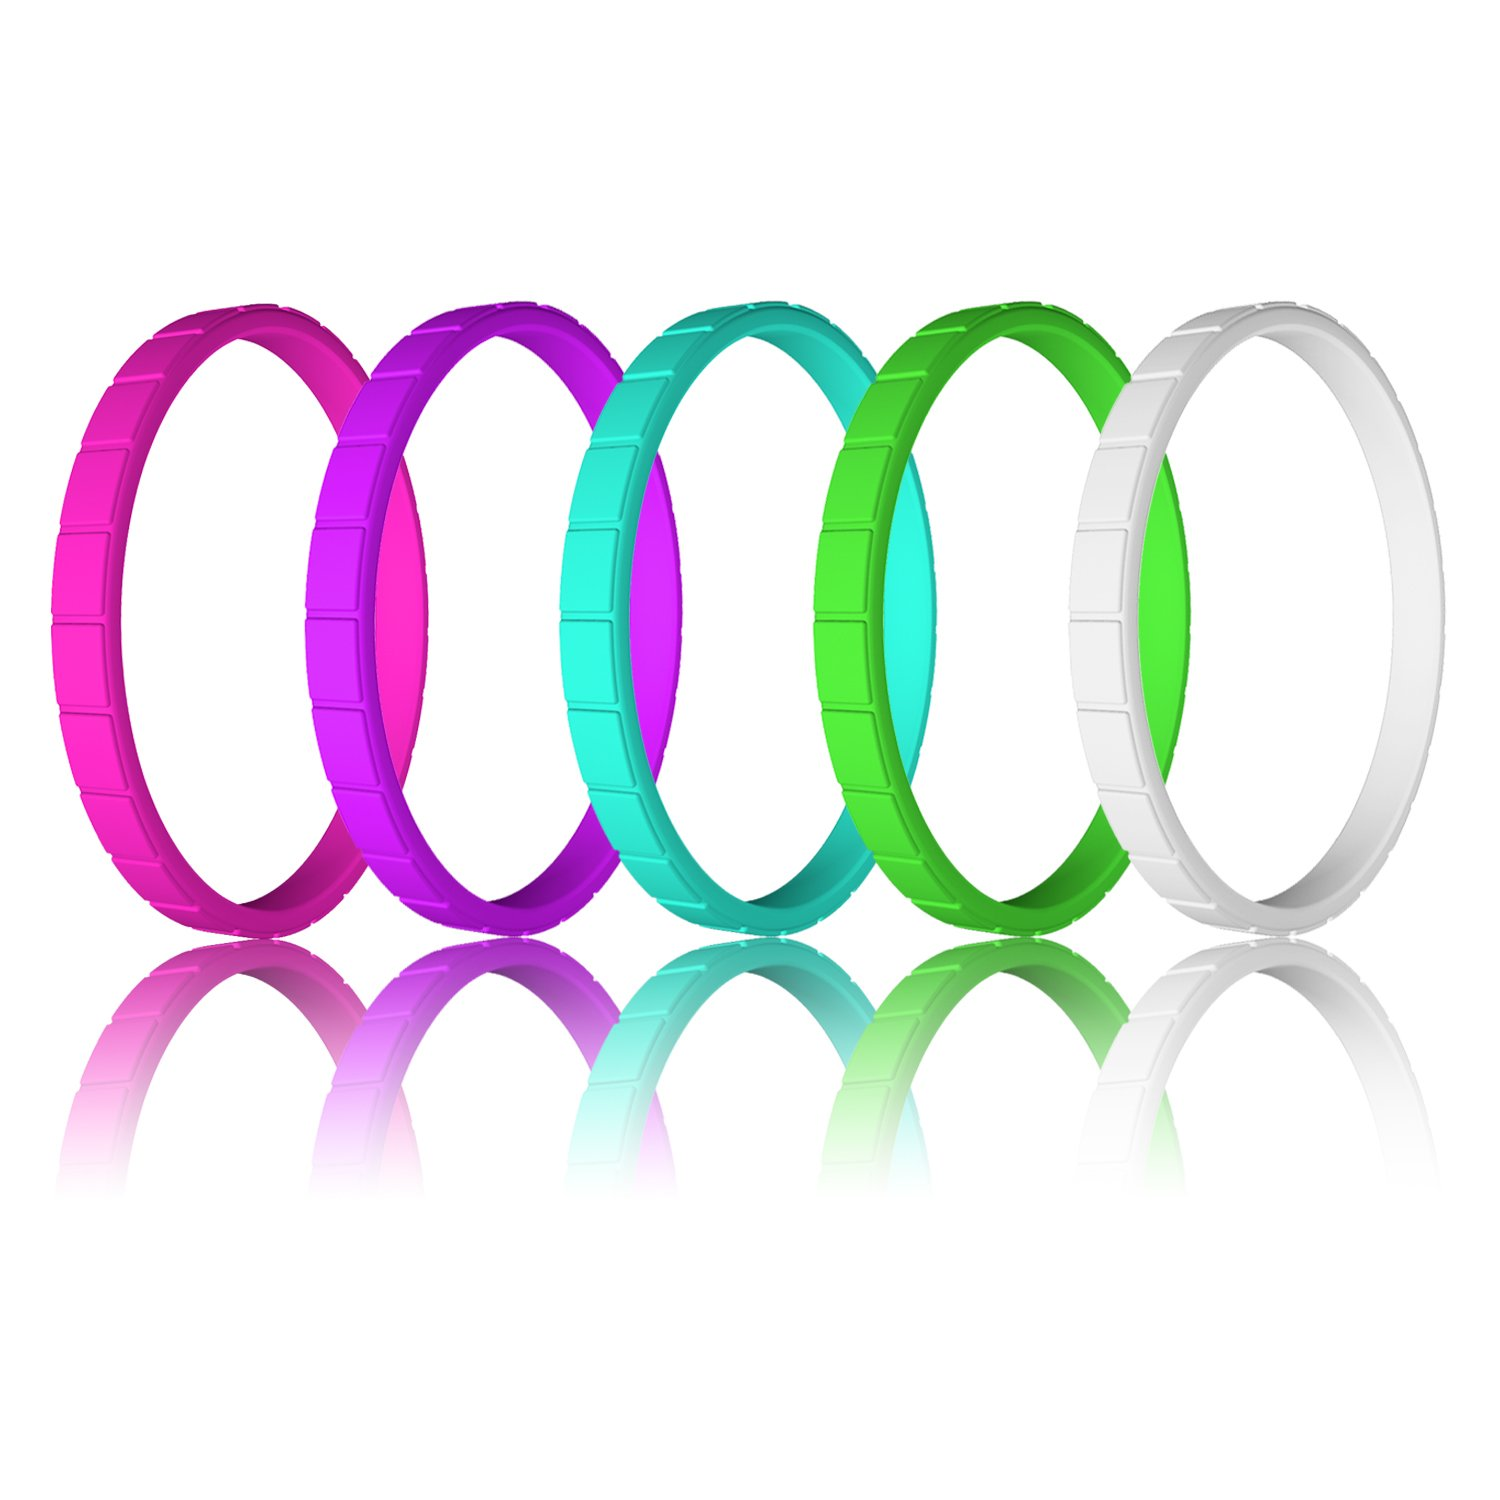 LUNIQI Braided Thin and Stackable Durable Rubber Safe Band for Love 10 Pack- Silicone Wedding Ring for Women Souvenir and Outdoor Active Exercise Style Couple